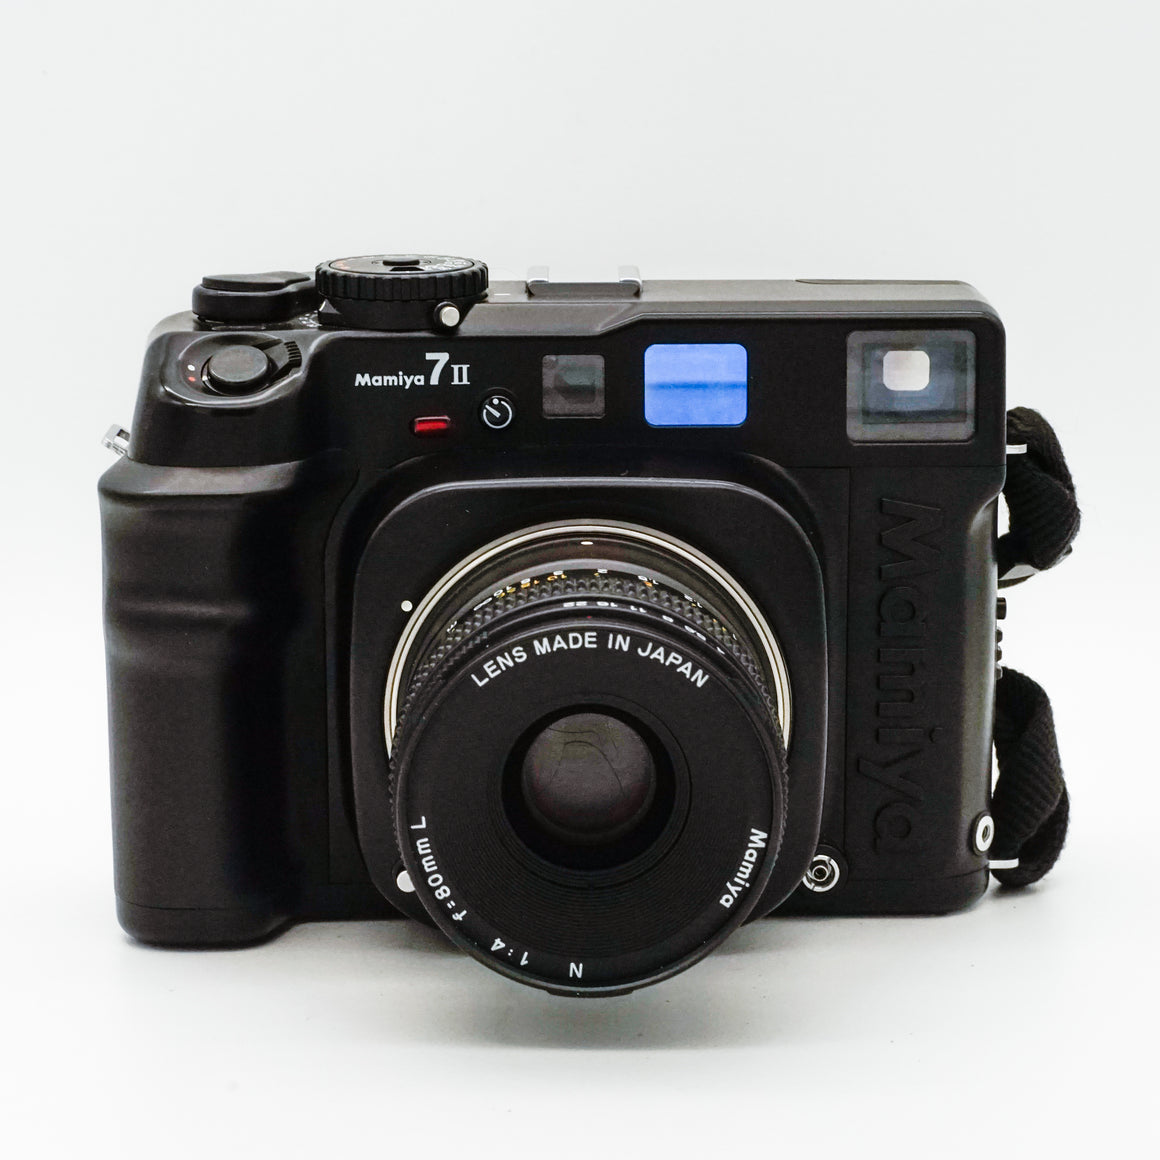 Mamiya 7 - 6x7 Medium Format Rangefinder Camera with 150mm f/4 Lens